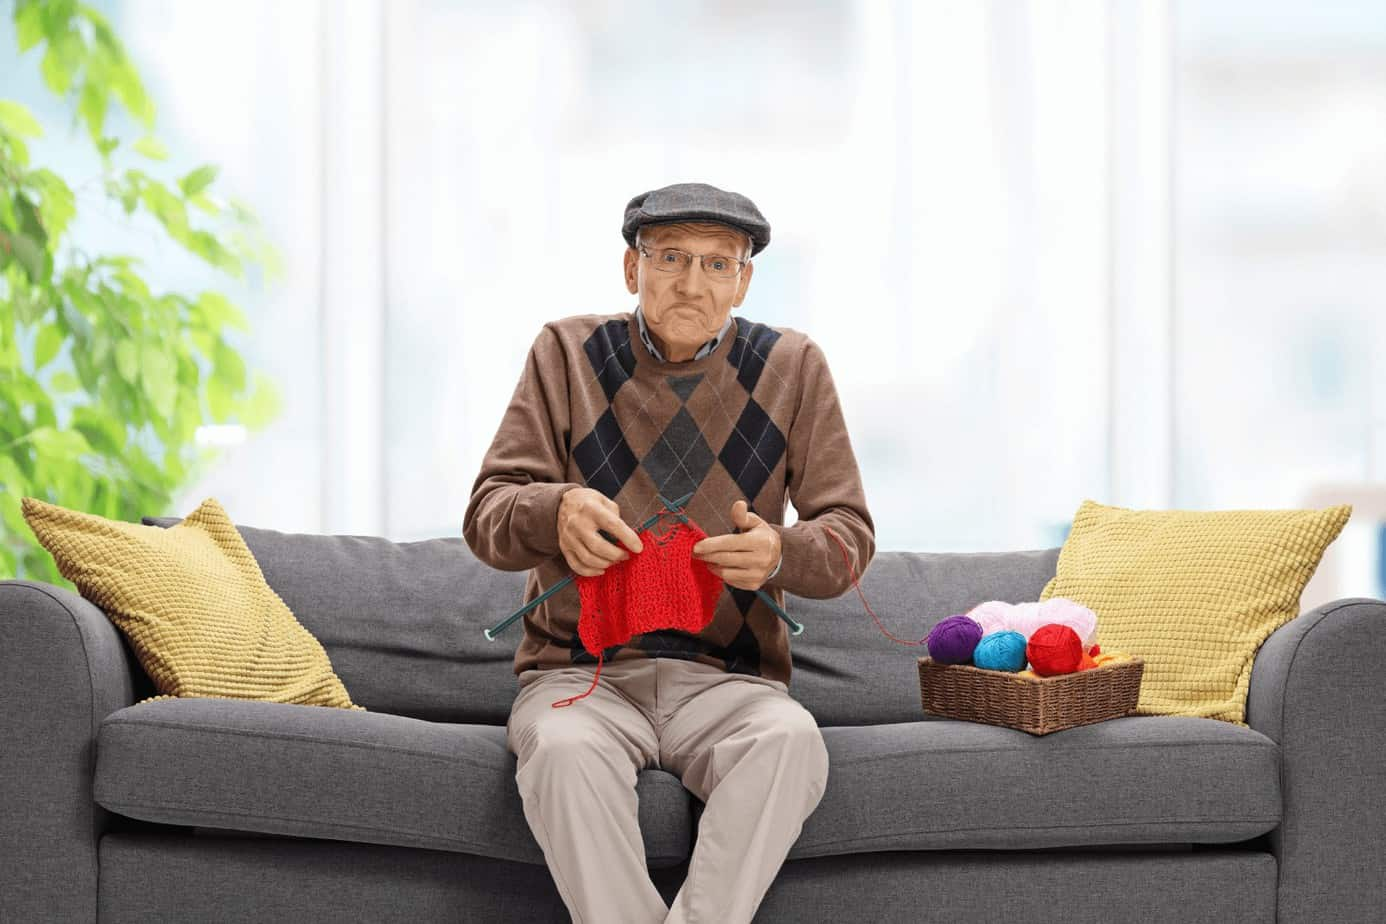 a man with a hat knitting red handkerchief